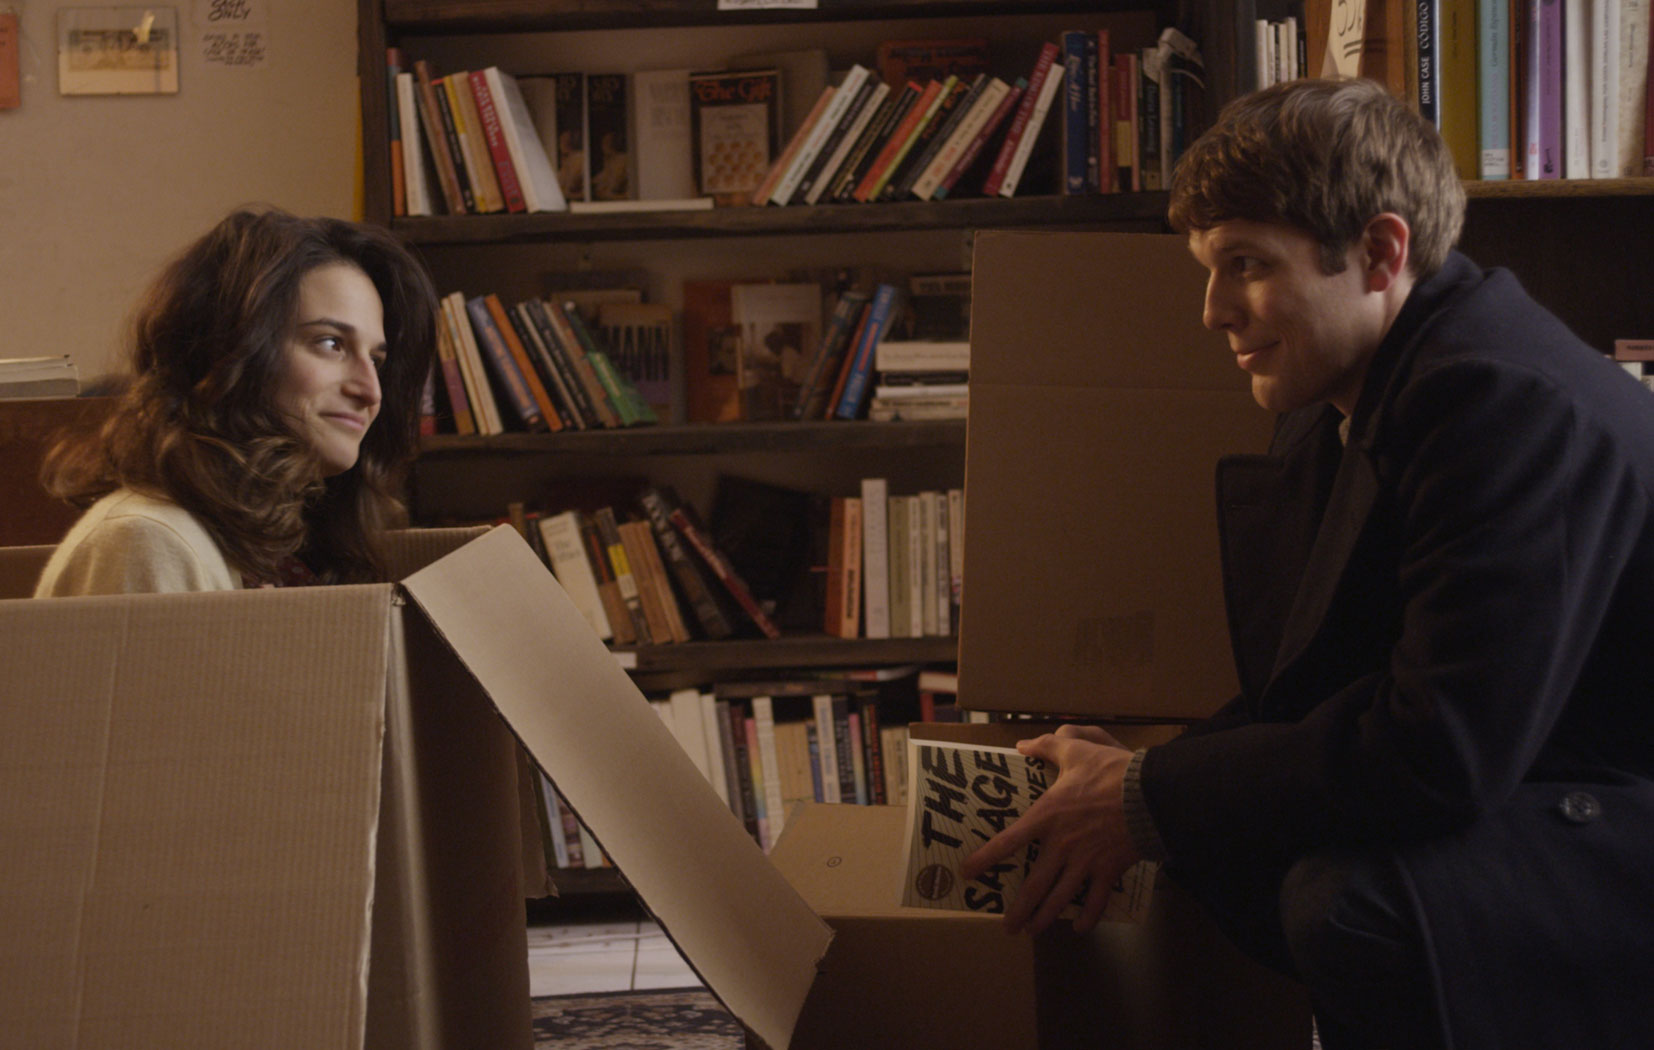 obvious child movie jenny slate Performance of the Year: Jenny Slate